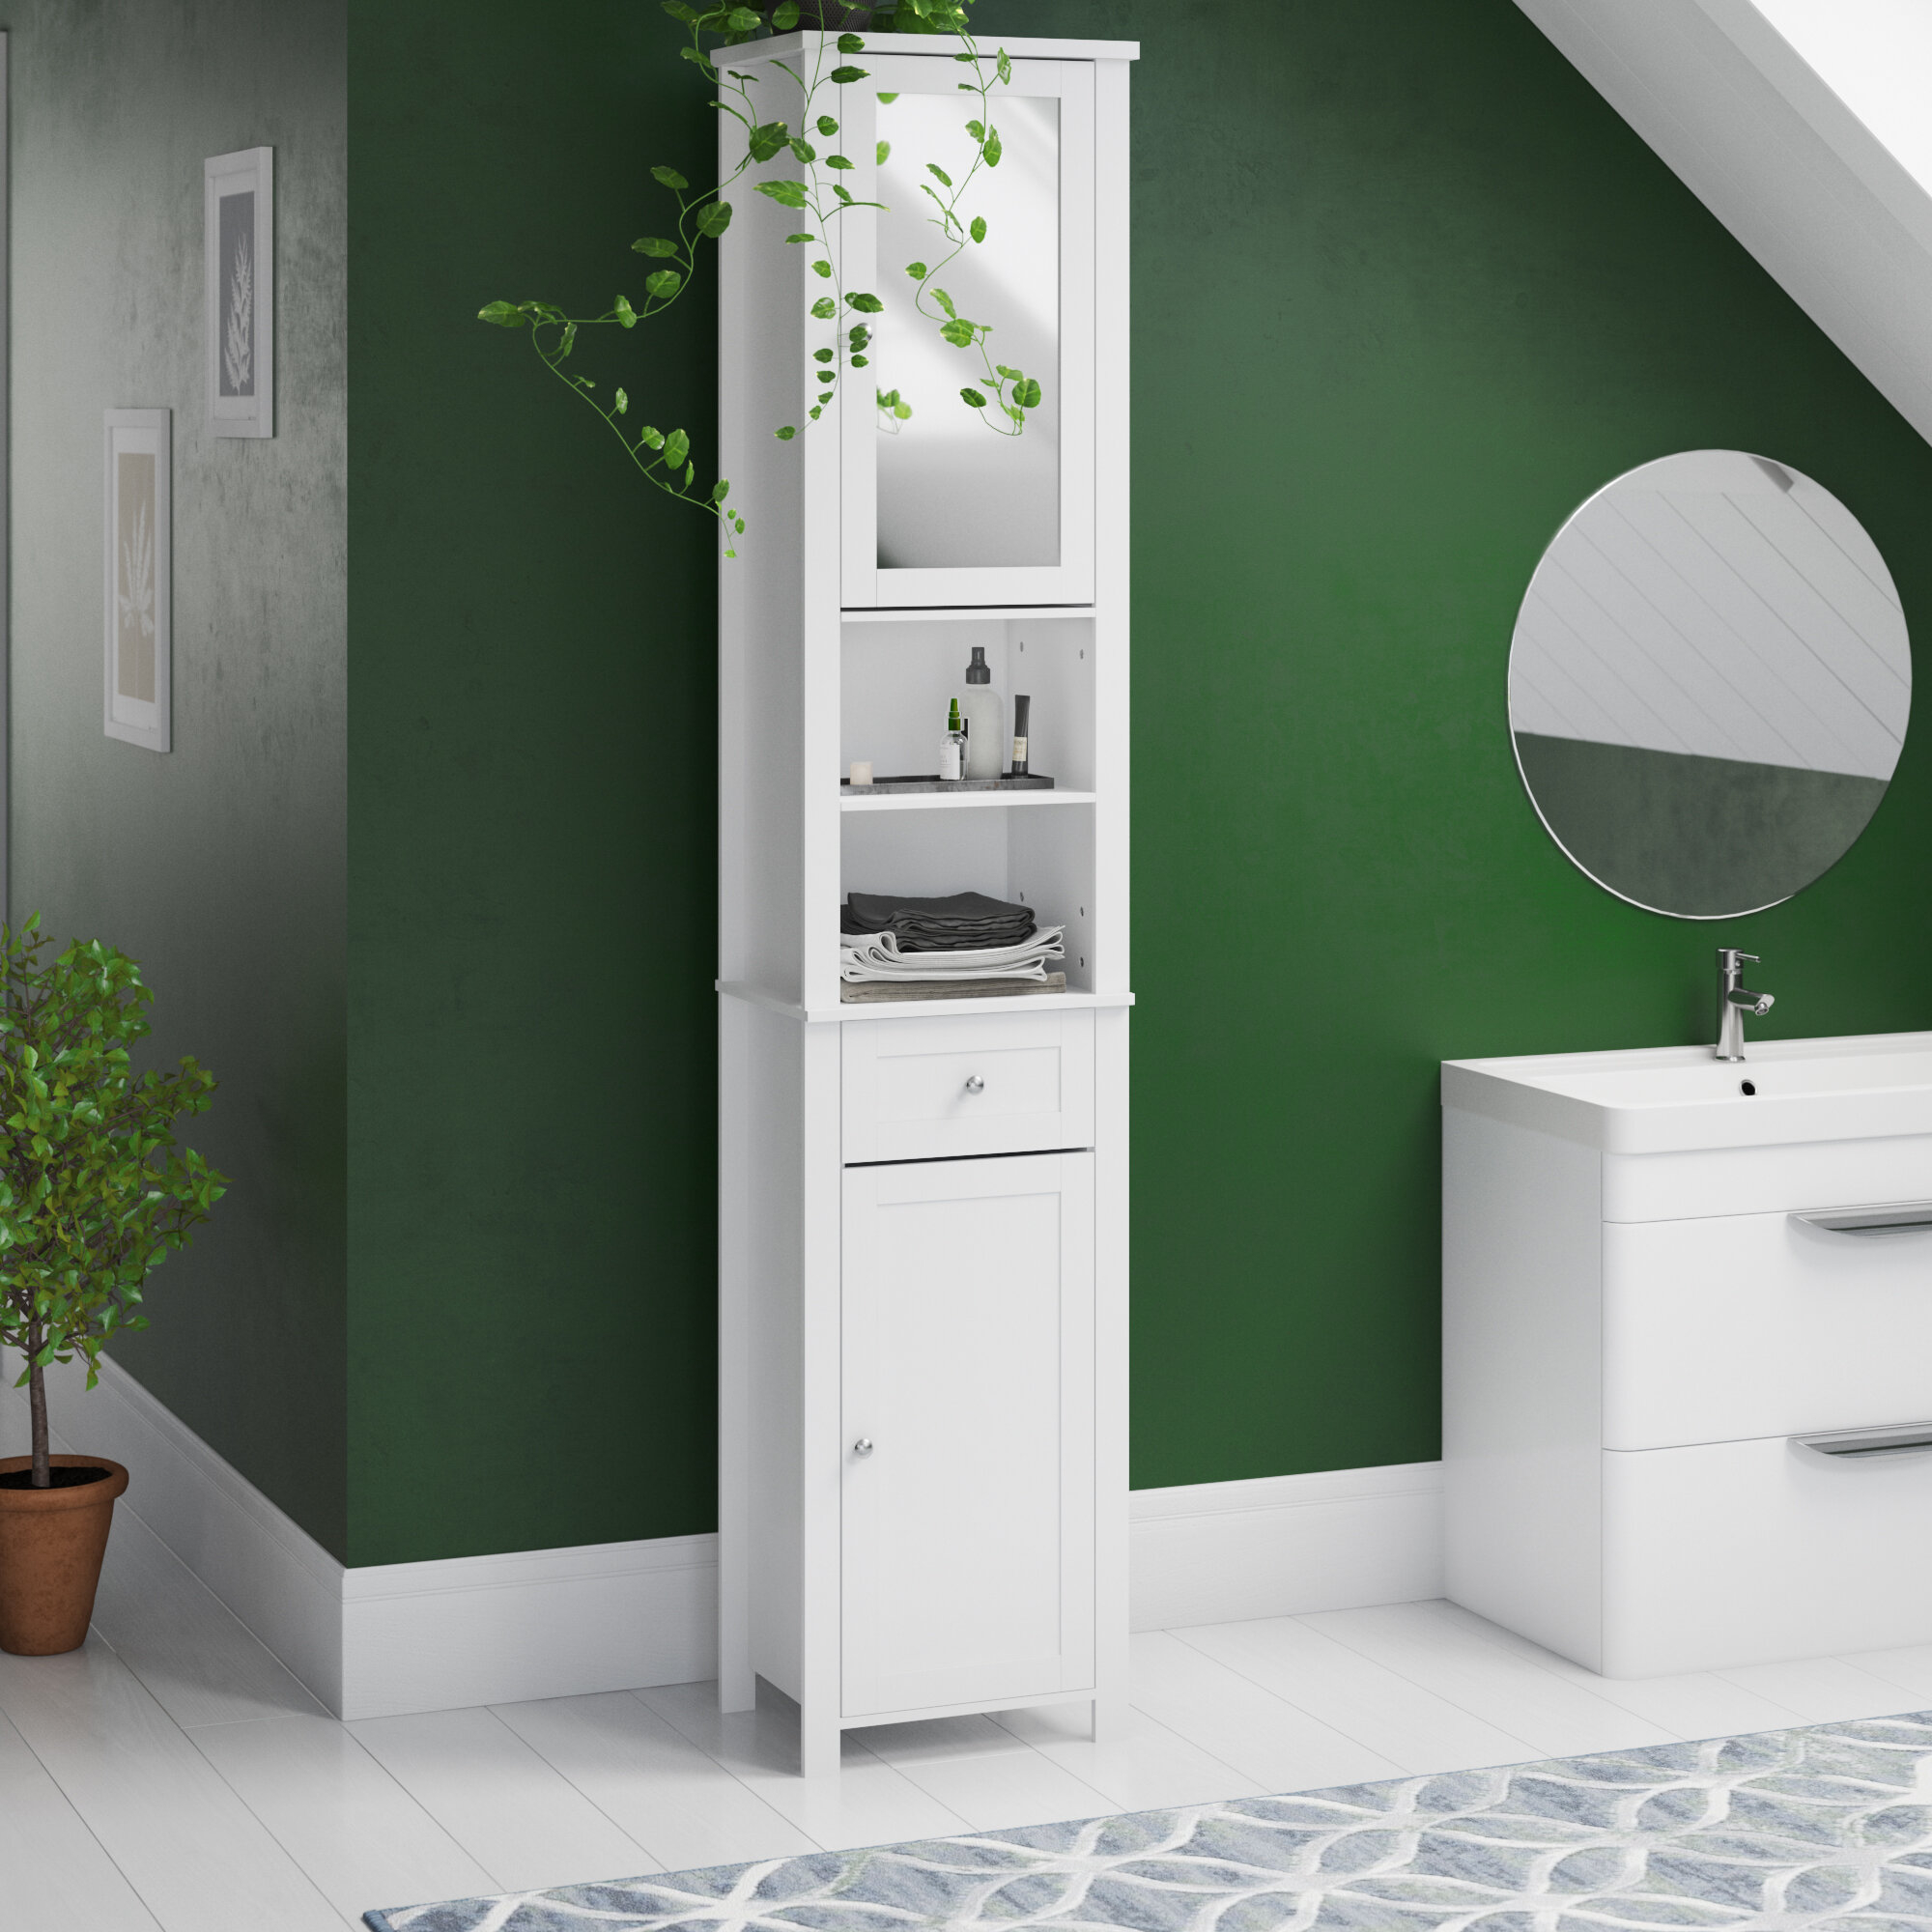 Vida Milano 40 X 190cm Mirrored Free Standing Tall Bathroom Cabinet for size 2000 X 2000